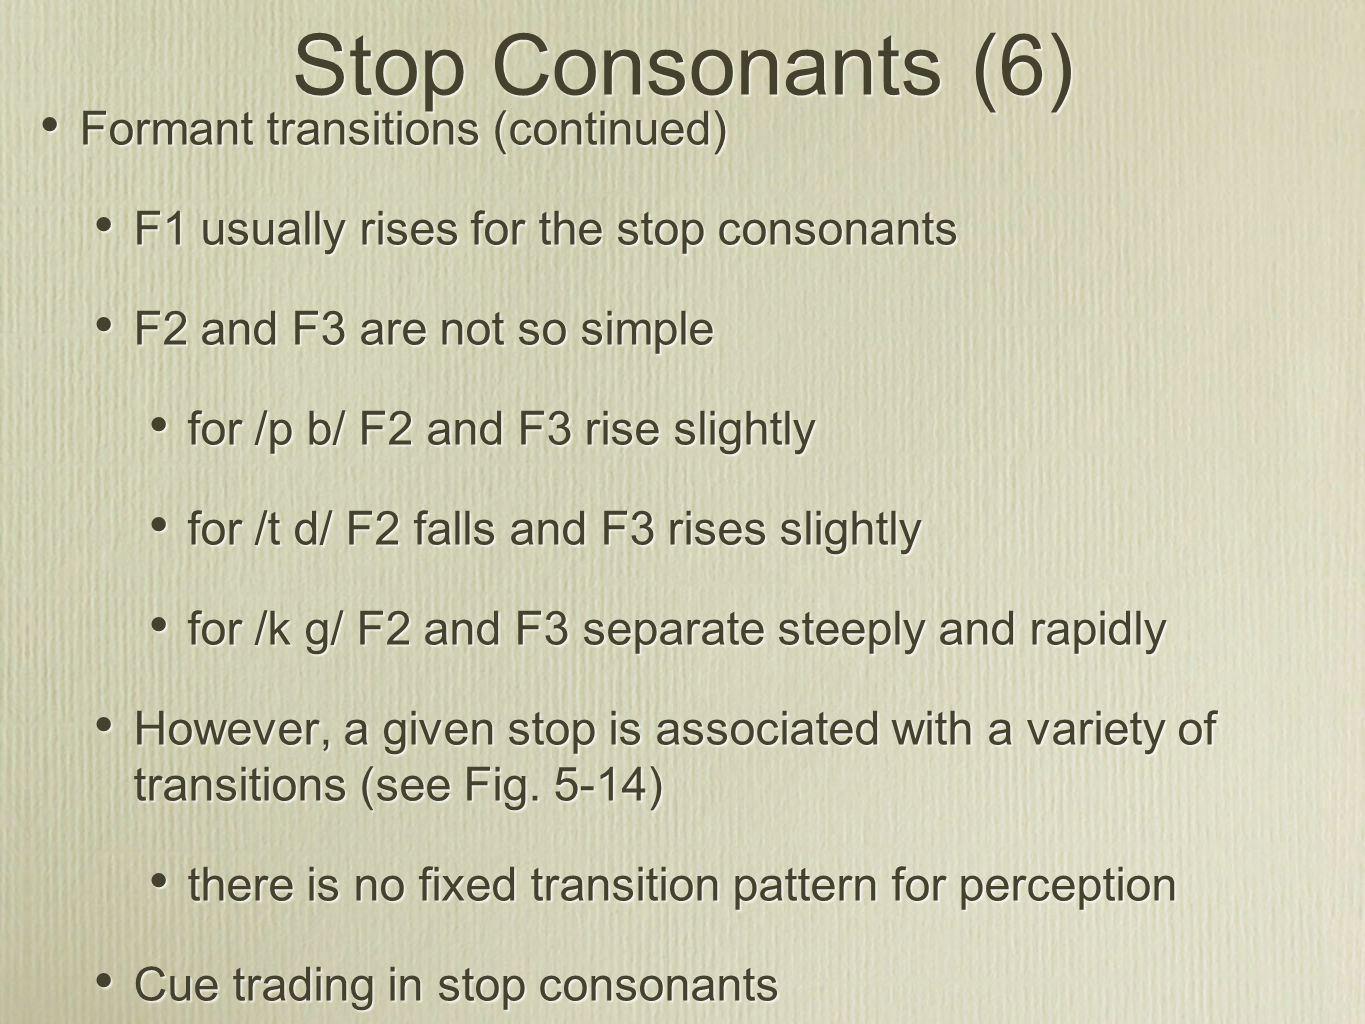 Stop Consonants (6) Formant transitions (continued)